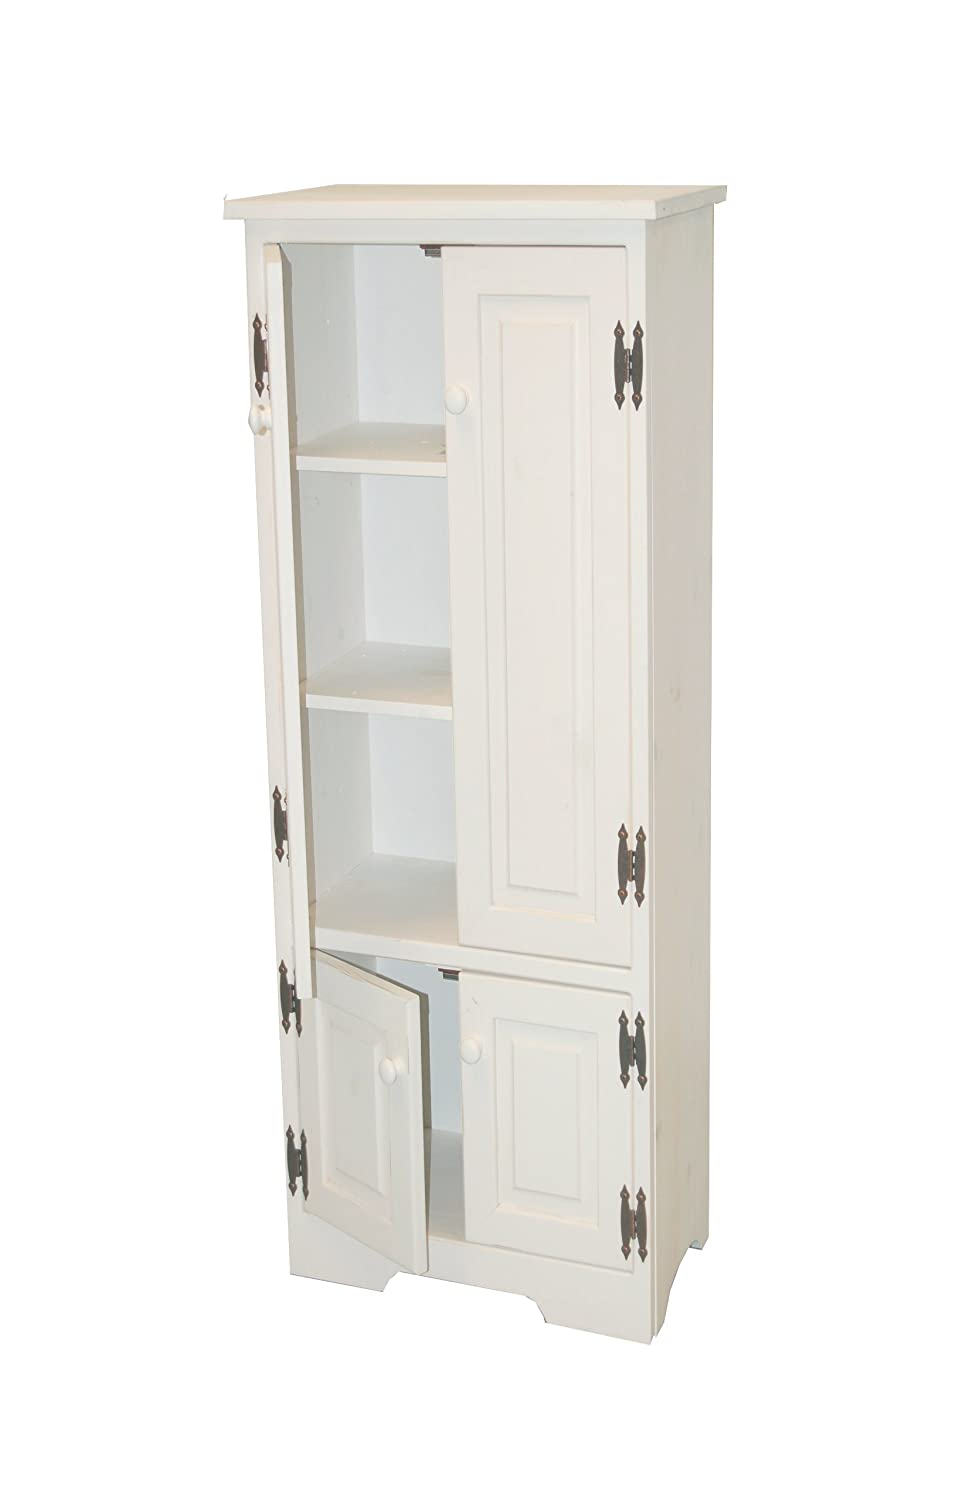 Elegant Amazon.com: Target Marketing Systems TMS Extra Tall Pine Cabinet, White:  Kitchen U0026 Dining